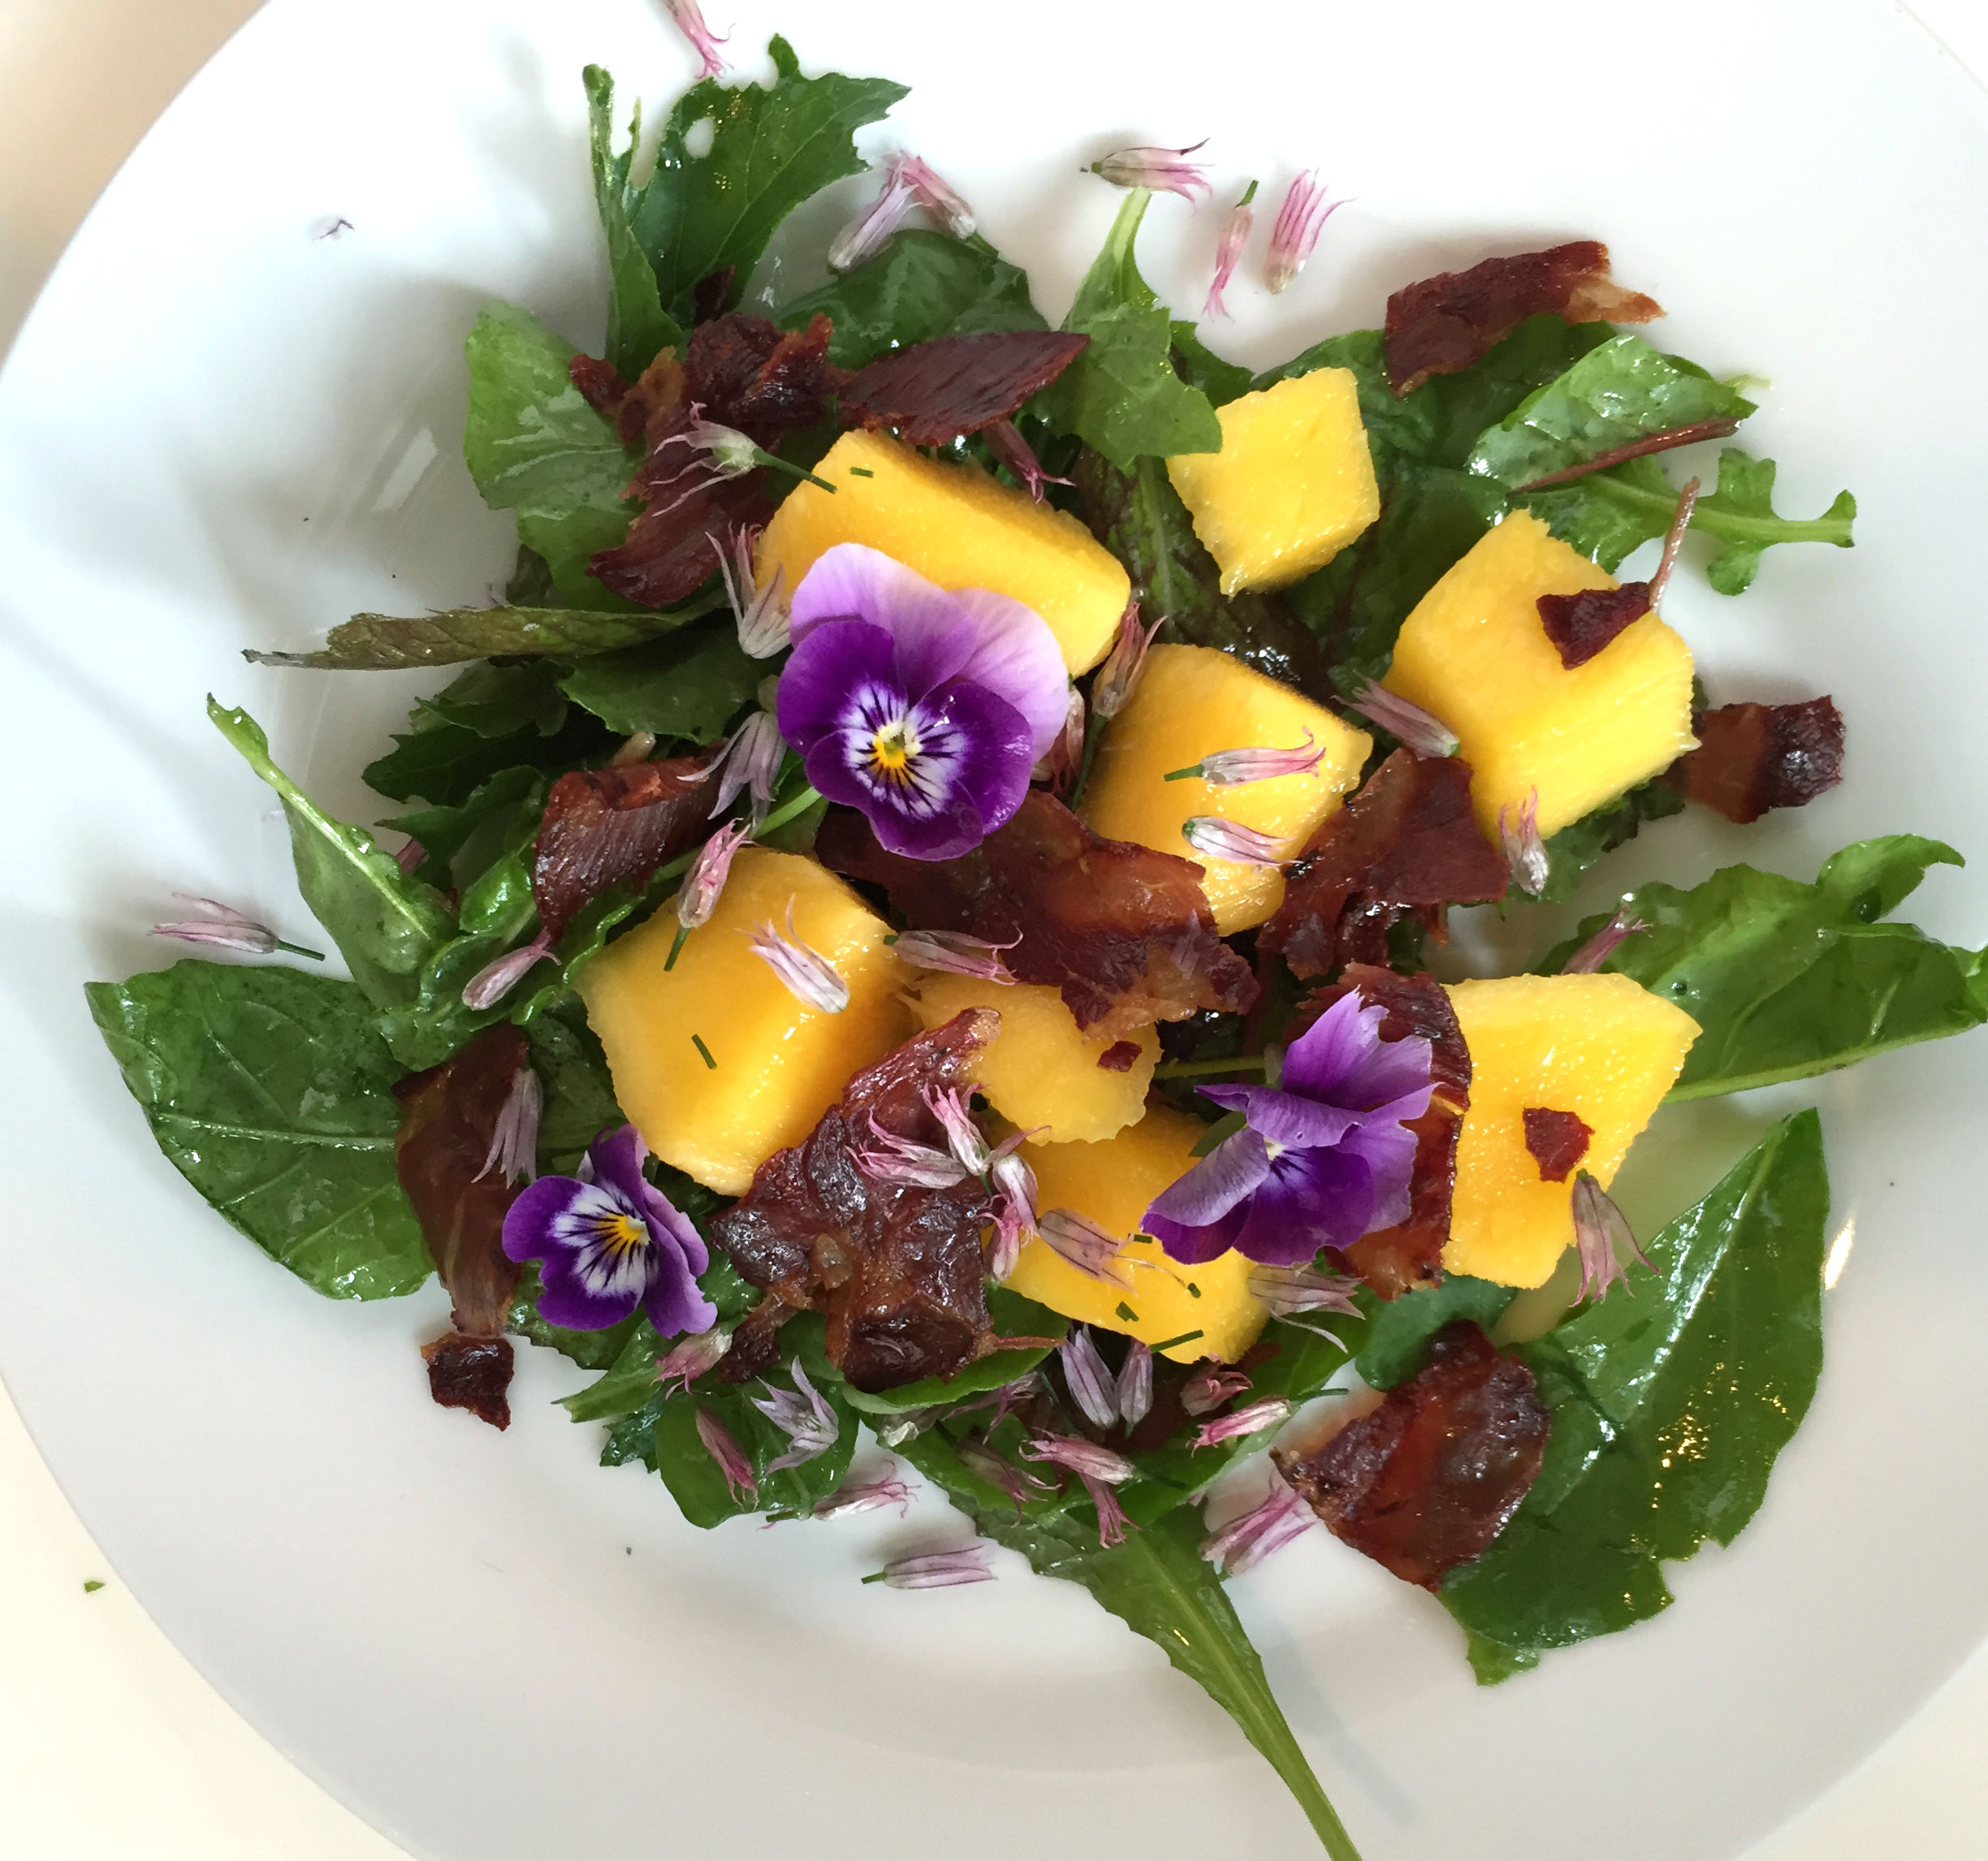 Salad of Mango, Arugula, Crispy Coppa, Pansies & Chives